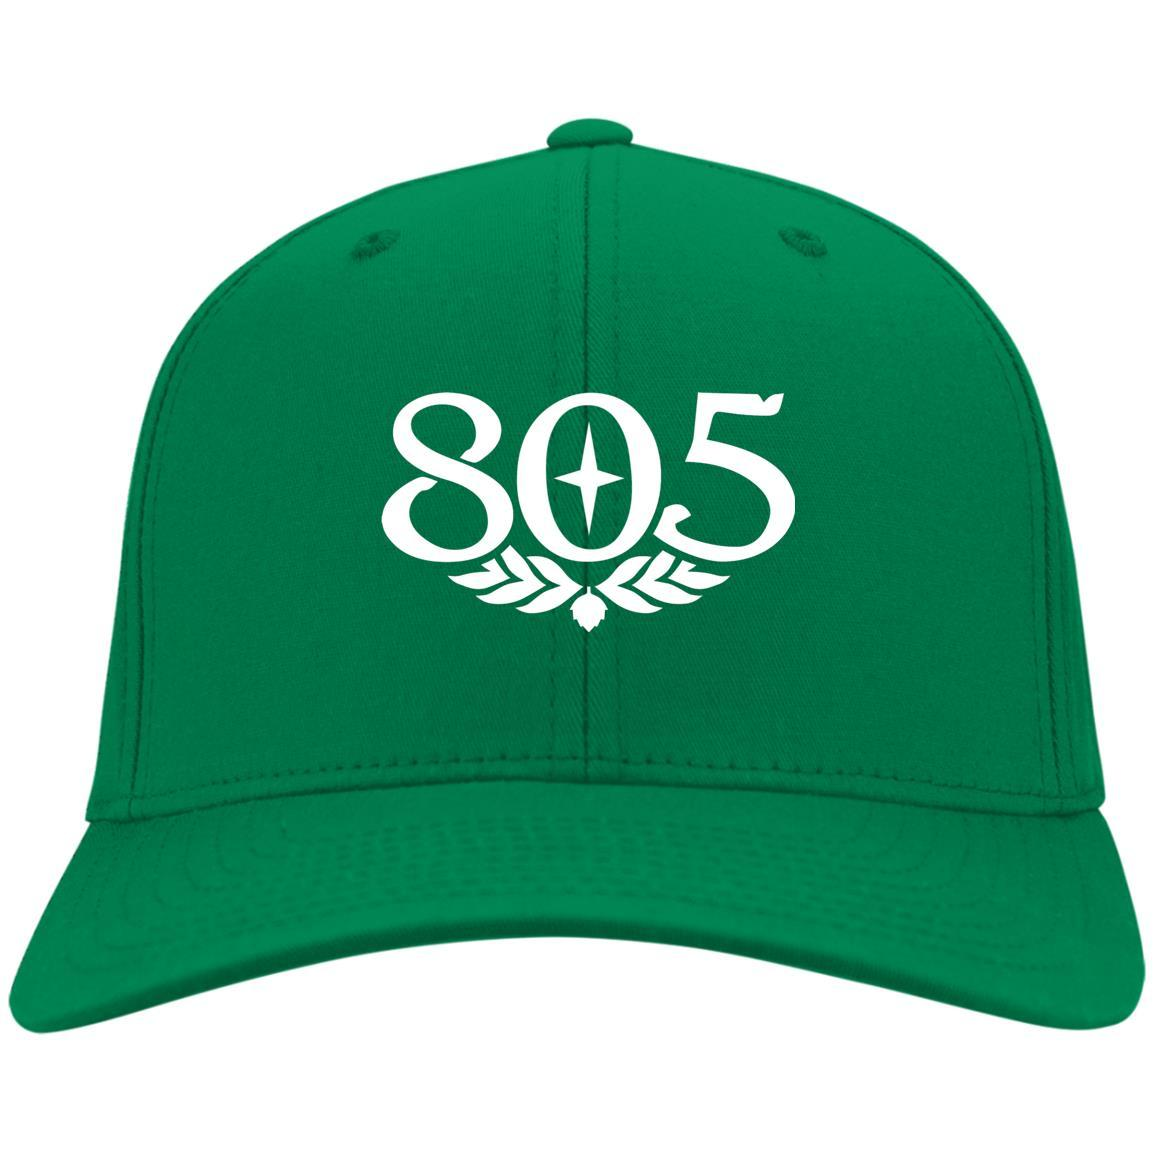 805 Beer - Port & Co. Twill Cap Kelly Green